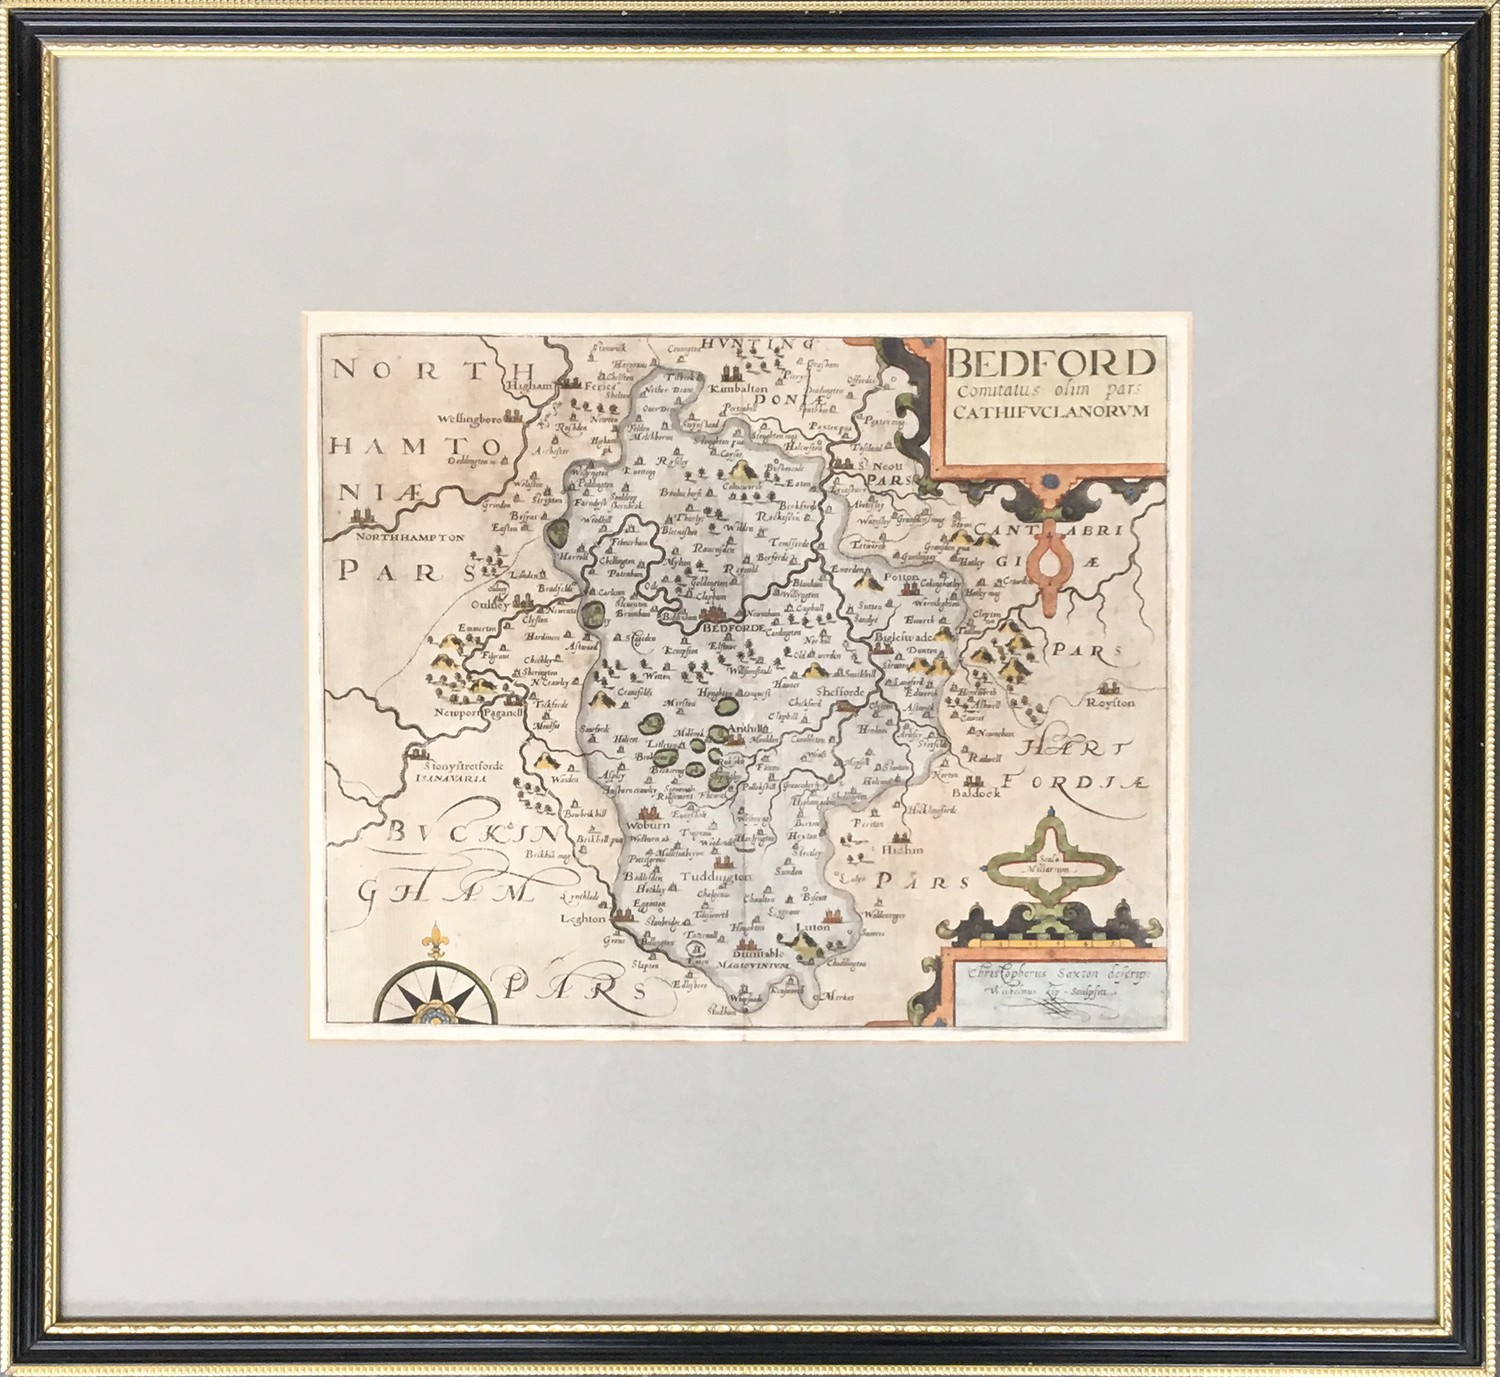 Christopher Saxton (act.c.1540-1610) with William Kip, hand coloured map of Bedford, 27.5 x 33cm - Image 2 of 2